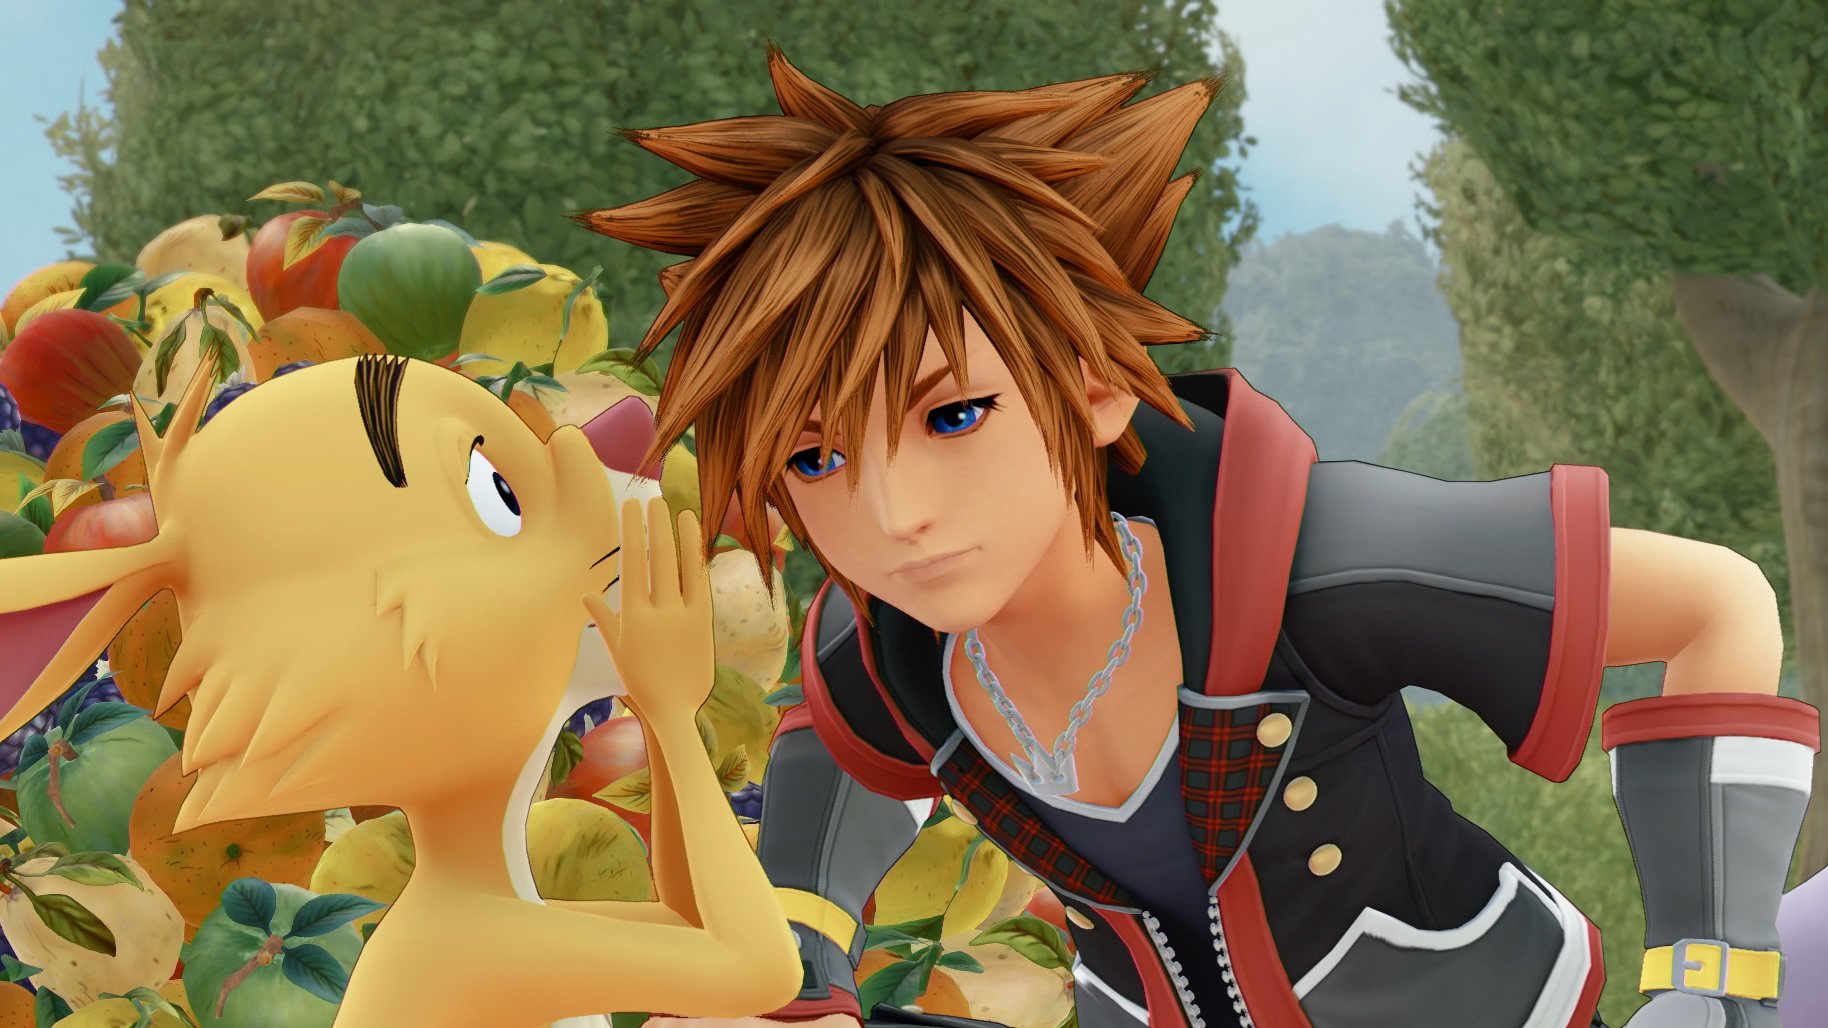 Voice actors and cast in Kingdom Hearts 3